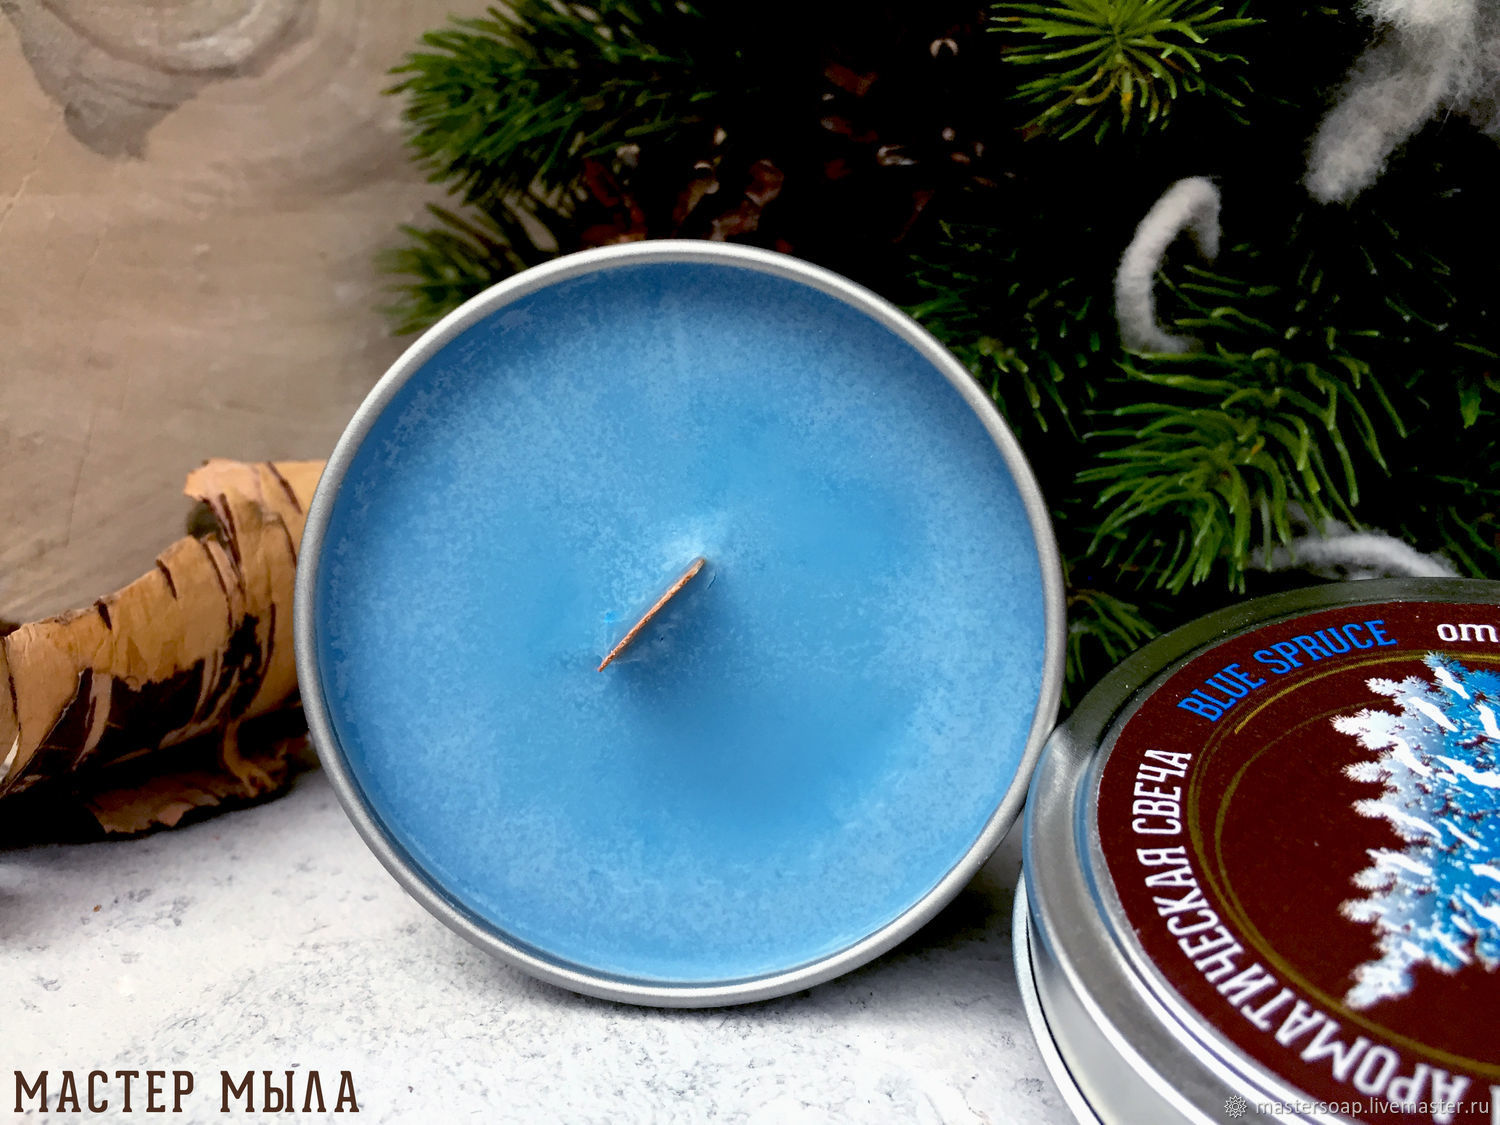 Soy scented candle with a Christmas scent in the range, Candles, Moscow,  Фото №1